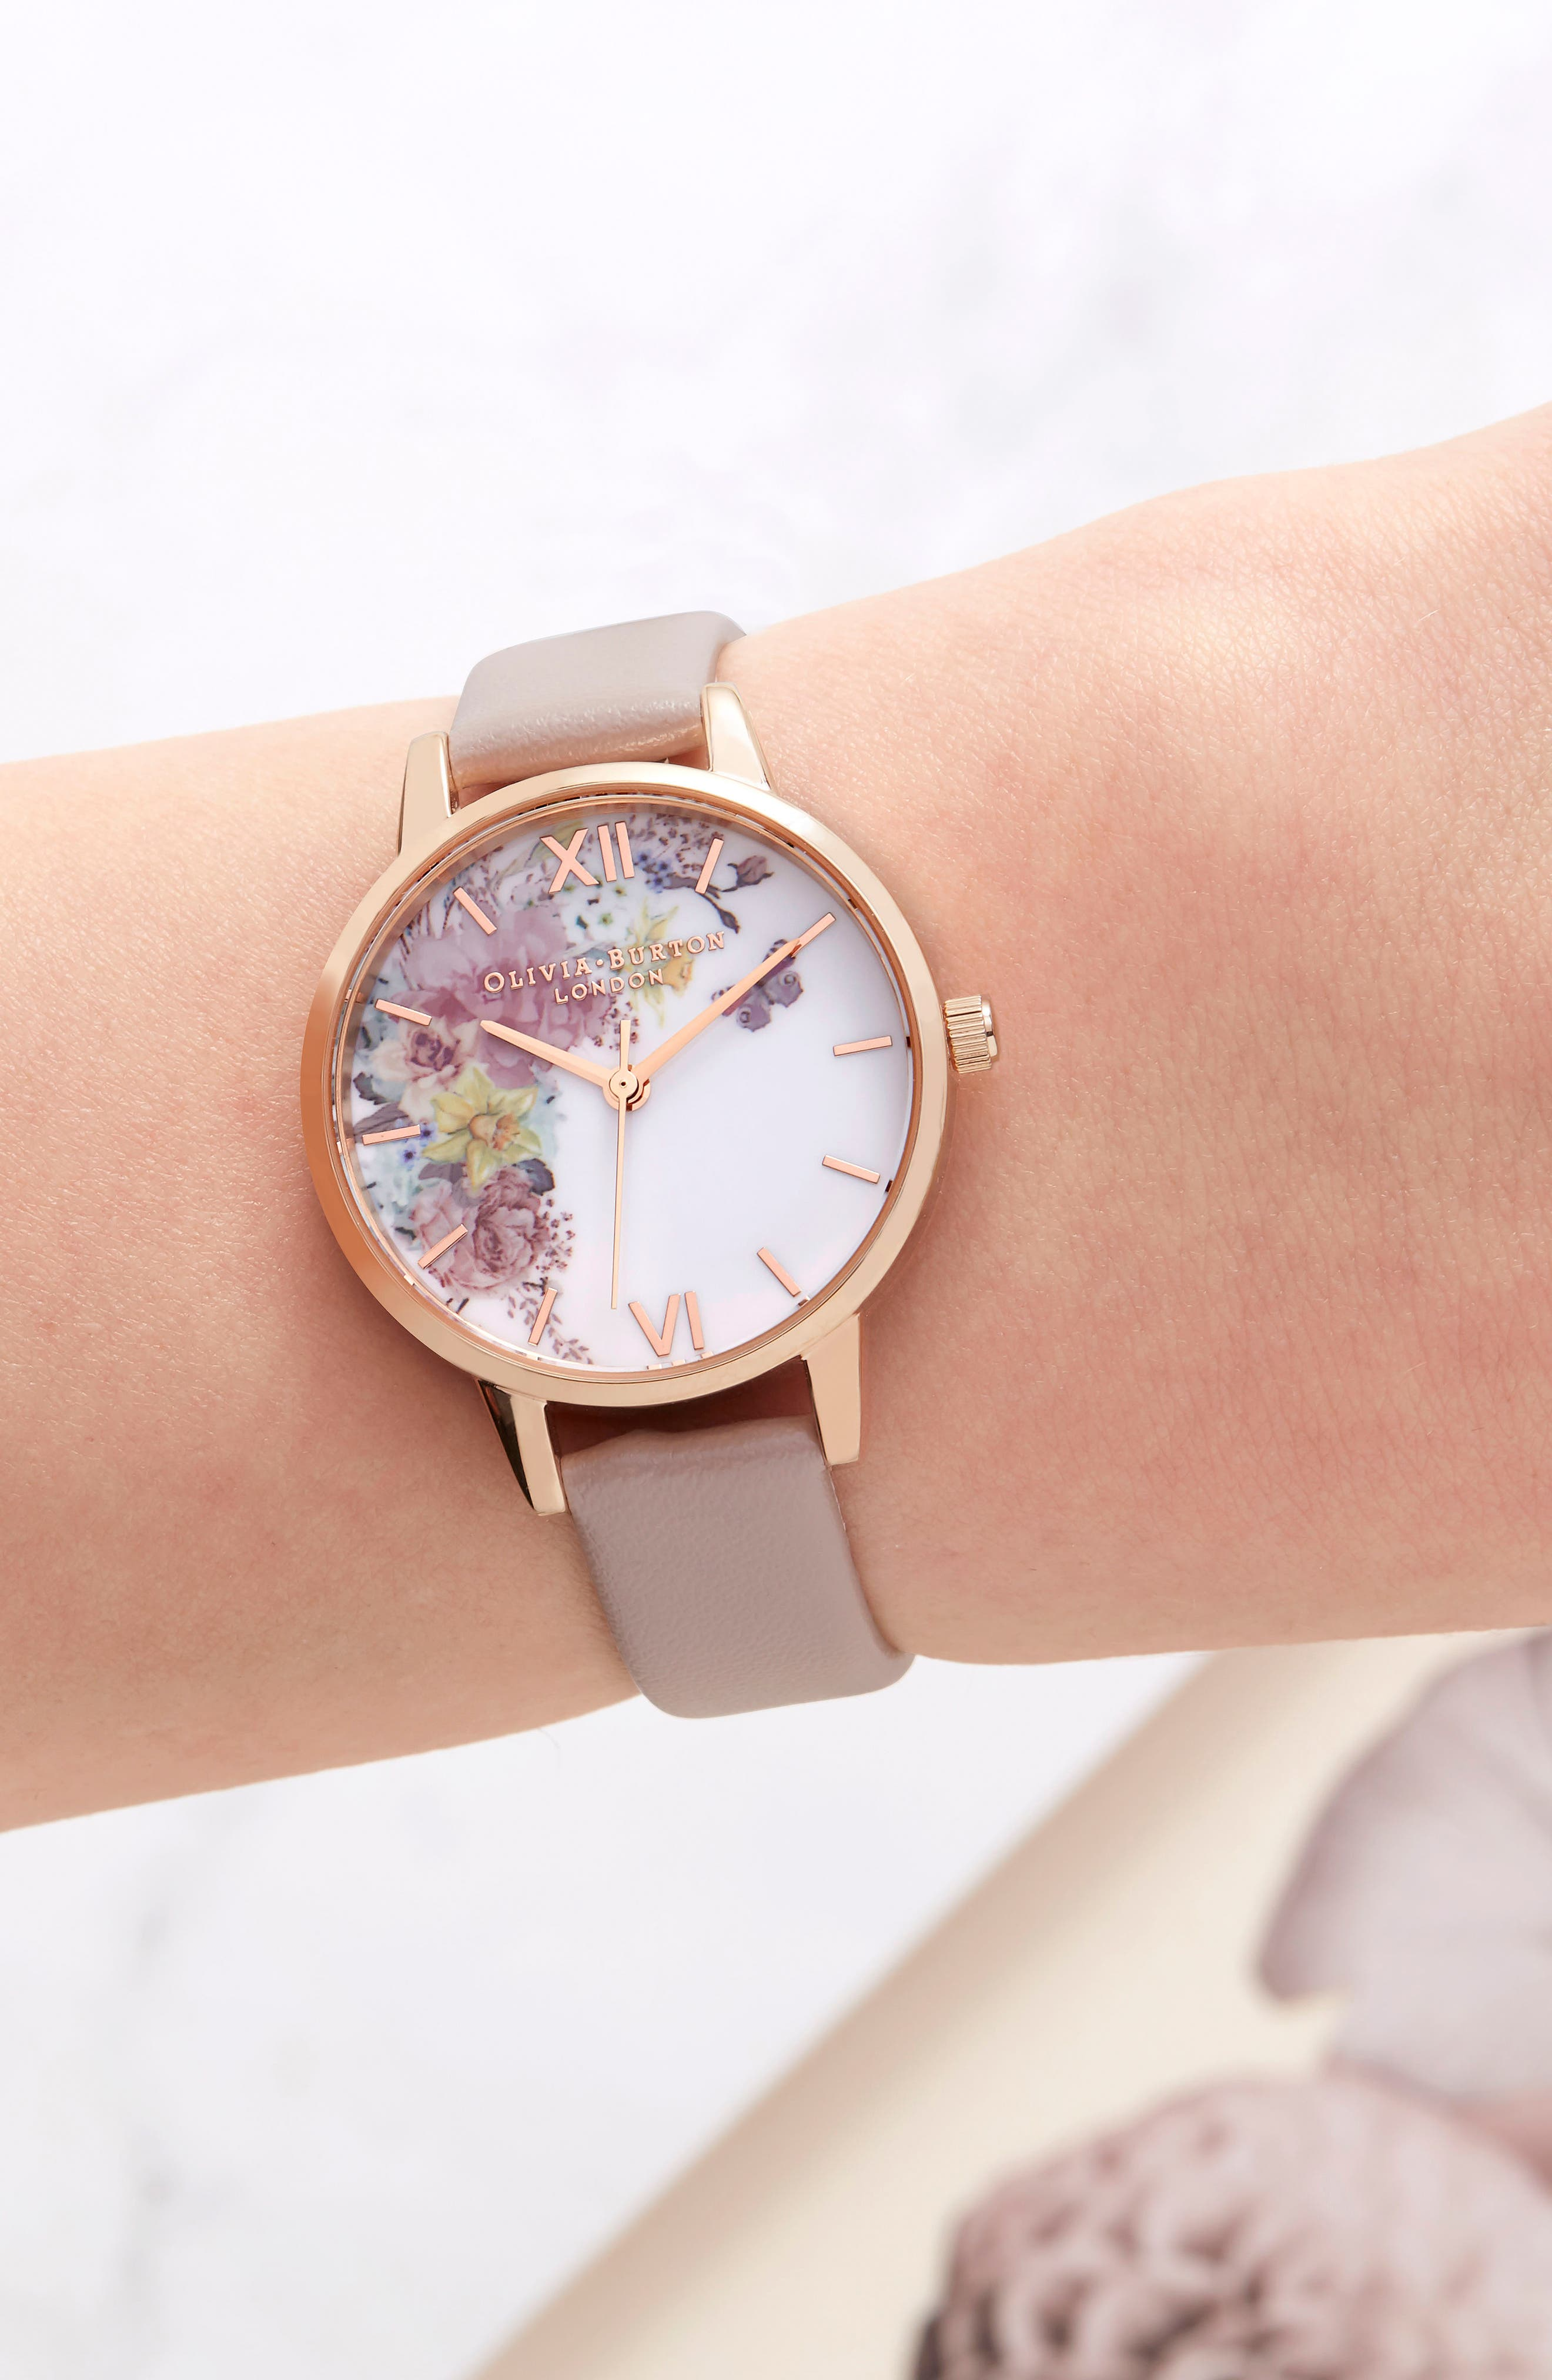 Enchanted Garden Faux Leather Strap Watch, 30mm,                             Alternate thumbnail 4, color,                             Sand/ Floral/ Rose Gold